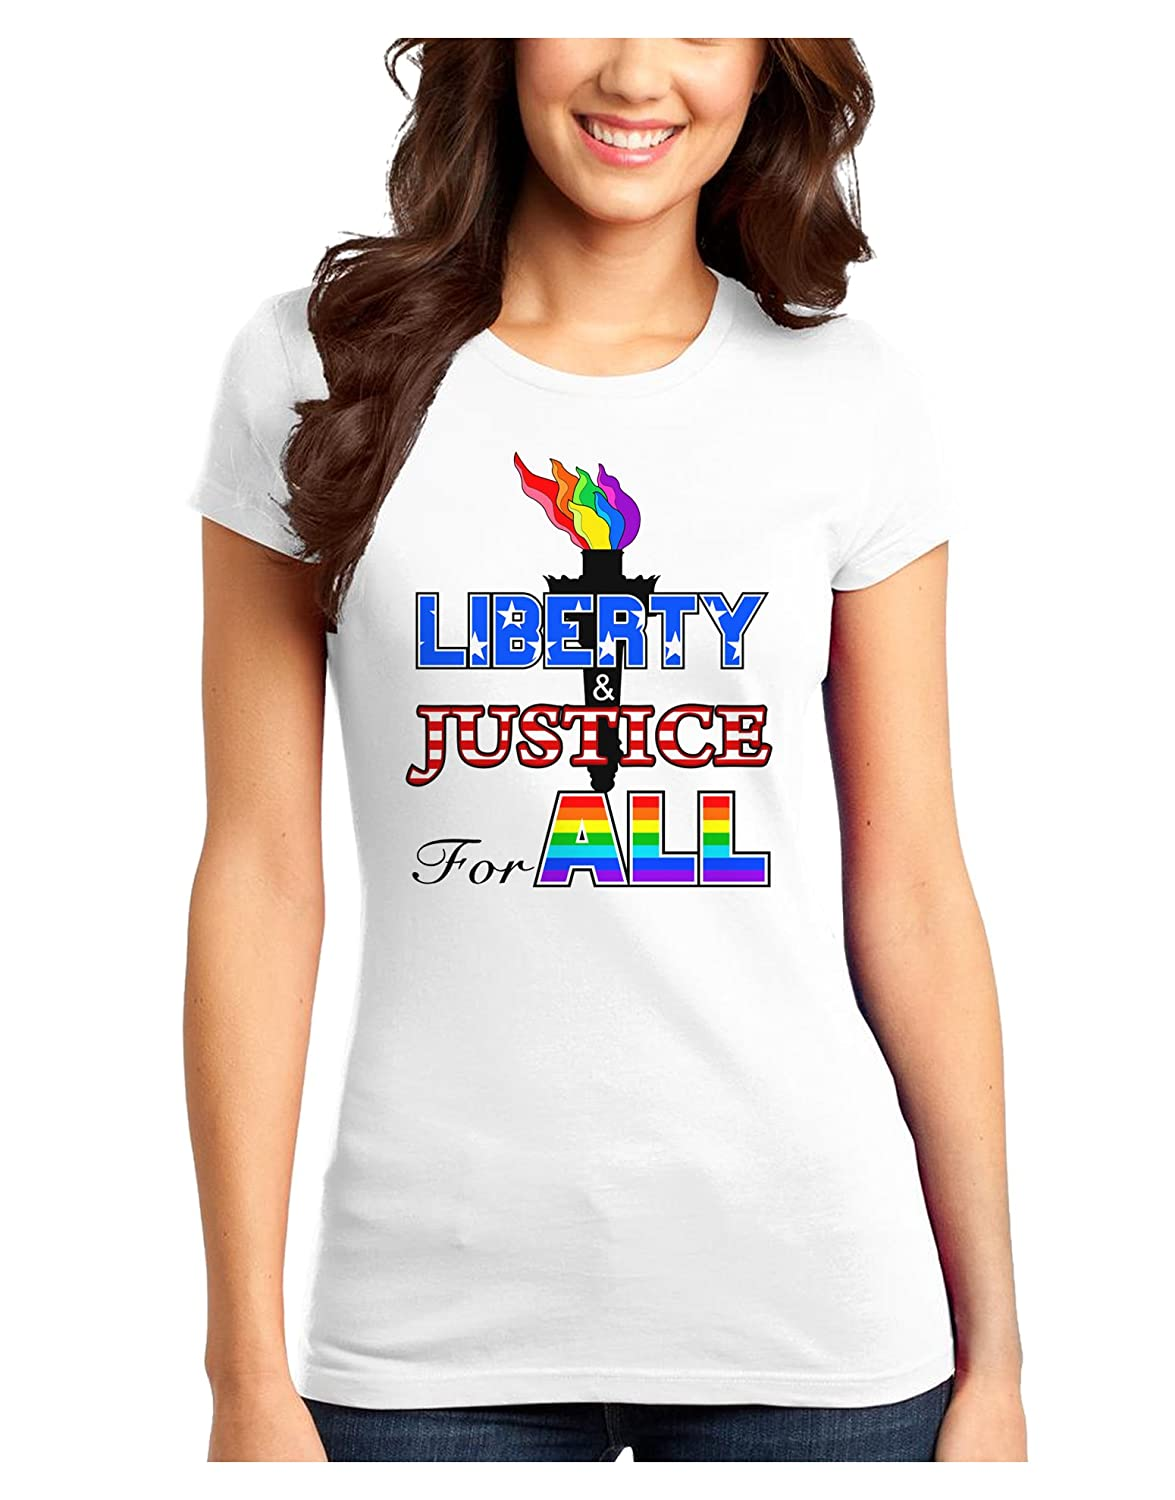 323ef66adce7c Amazon.com  Gay Equality Liberty Justice for All Juniors T-Shirt  Clothing